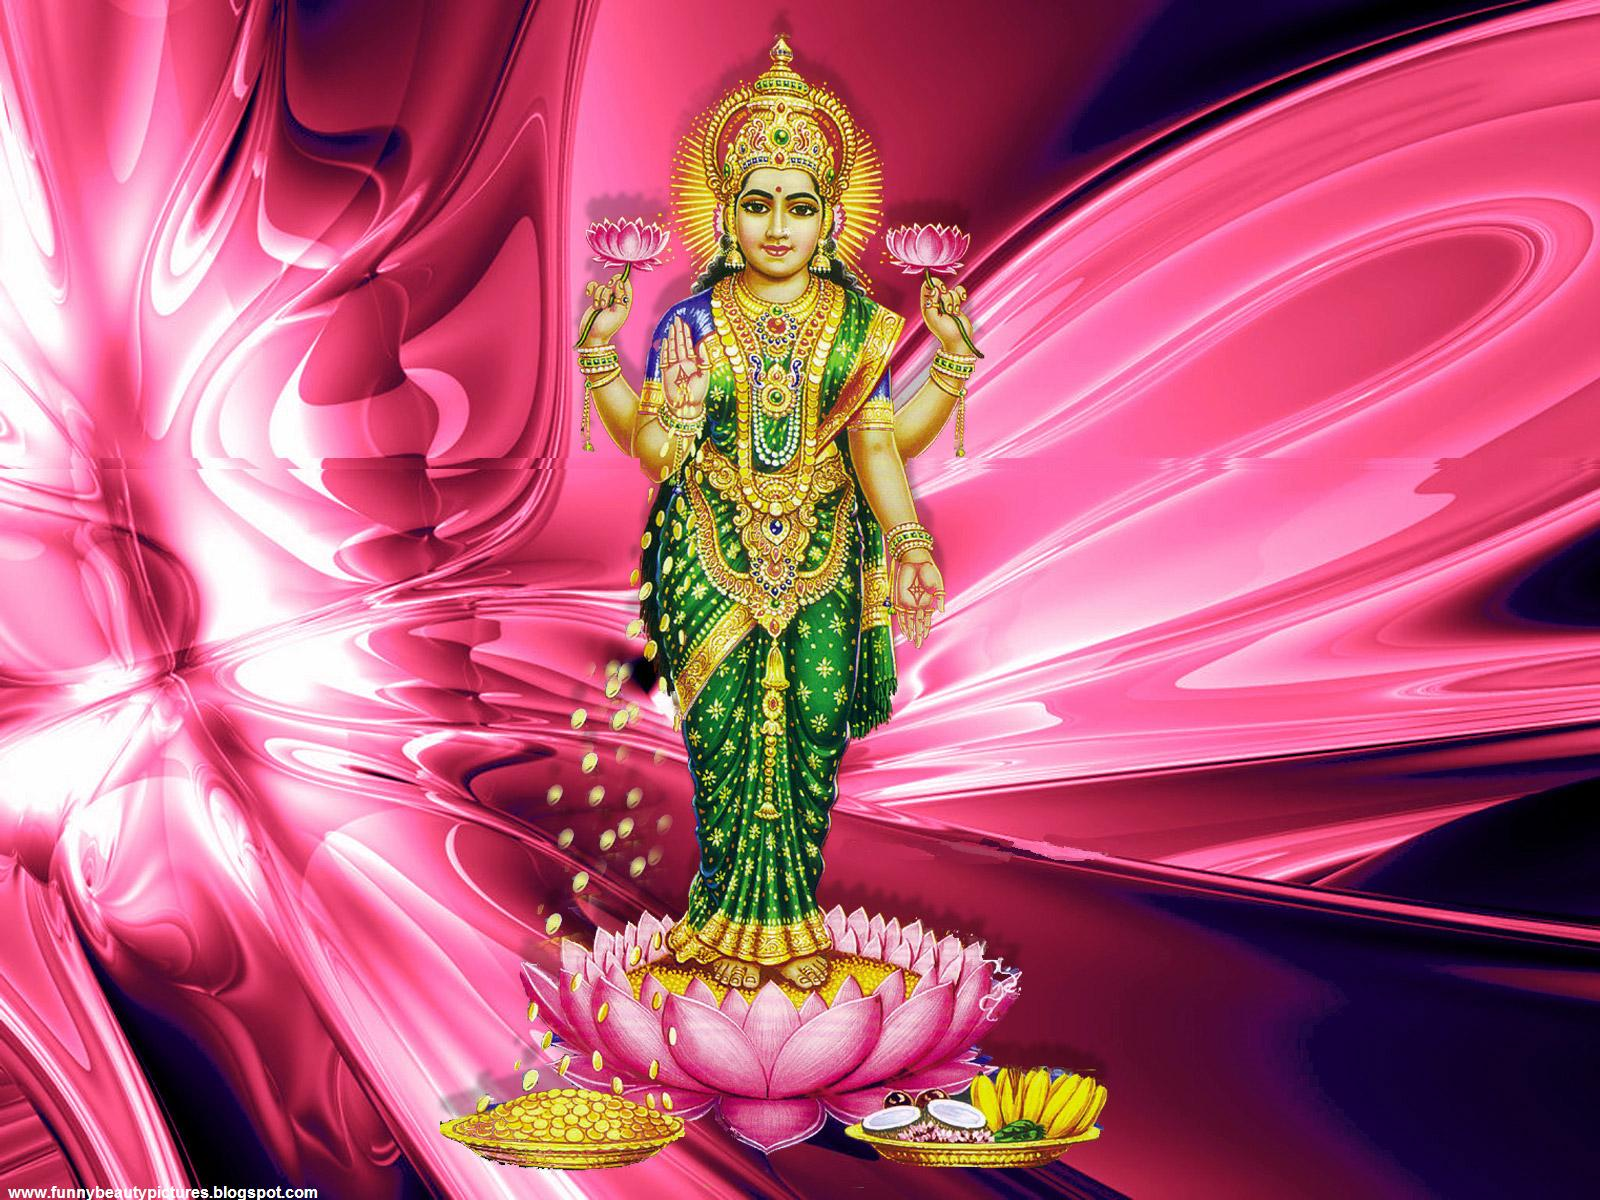 Beautiful Wallpaper Lord Devi - 13711005457  Collection_45963.jpg